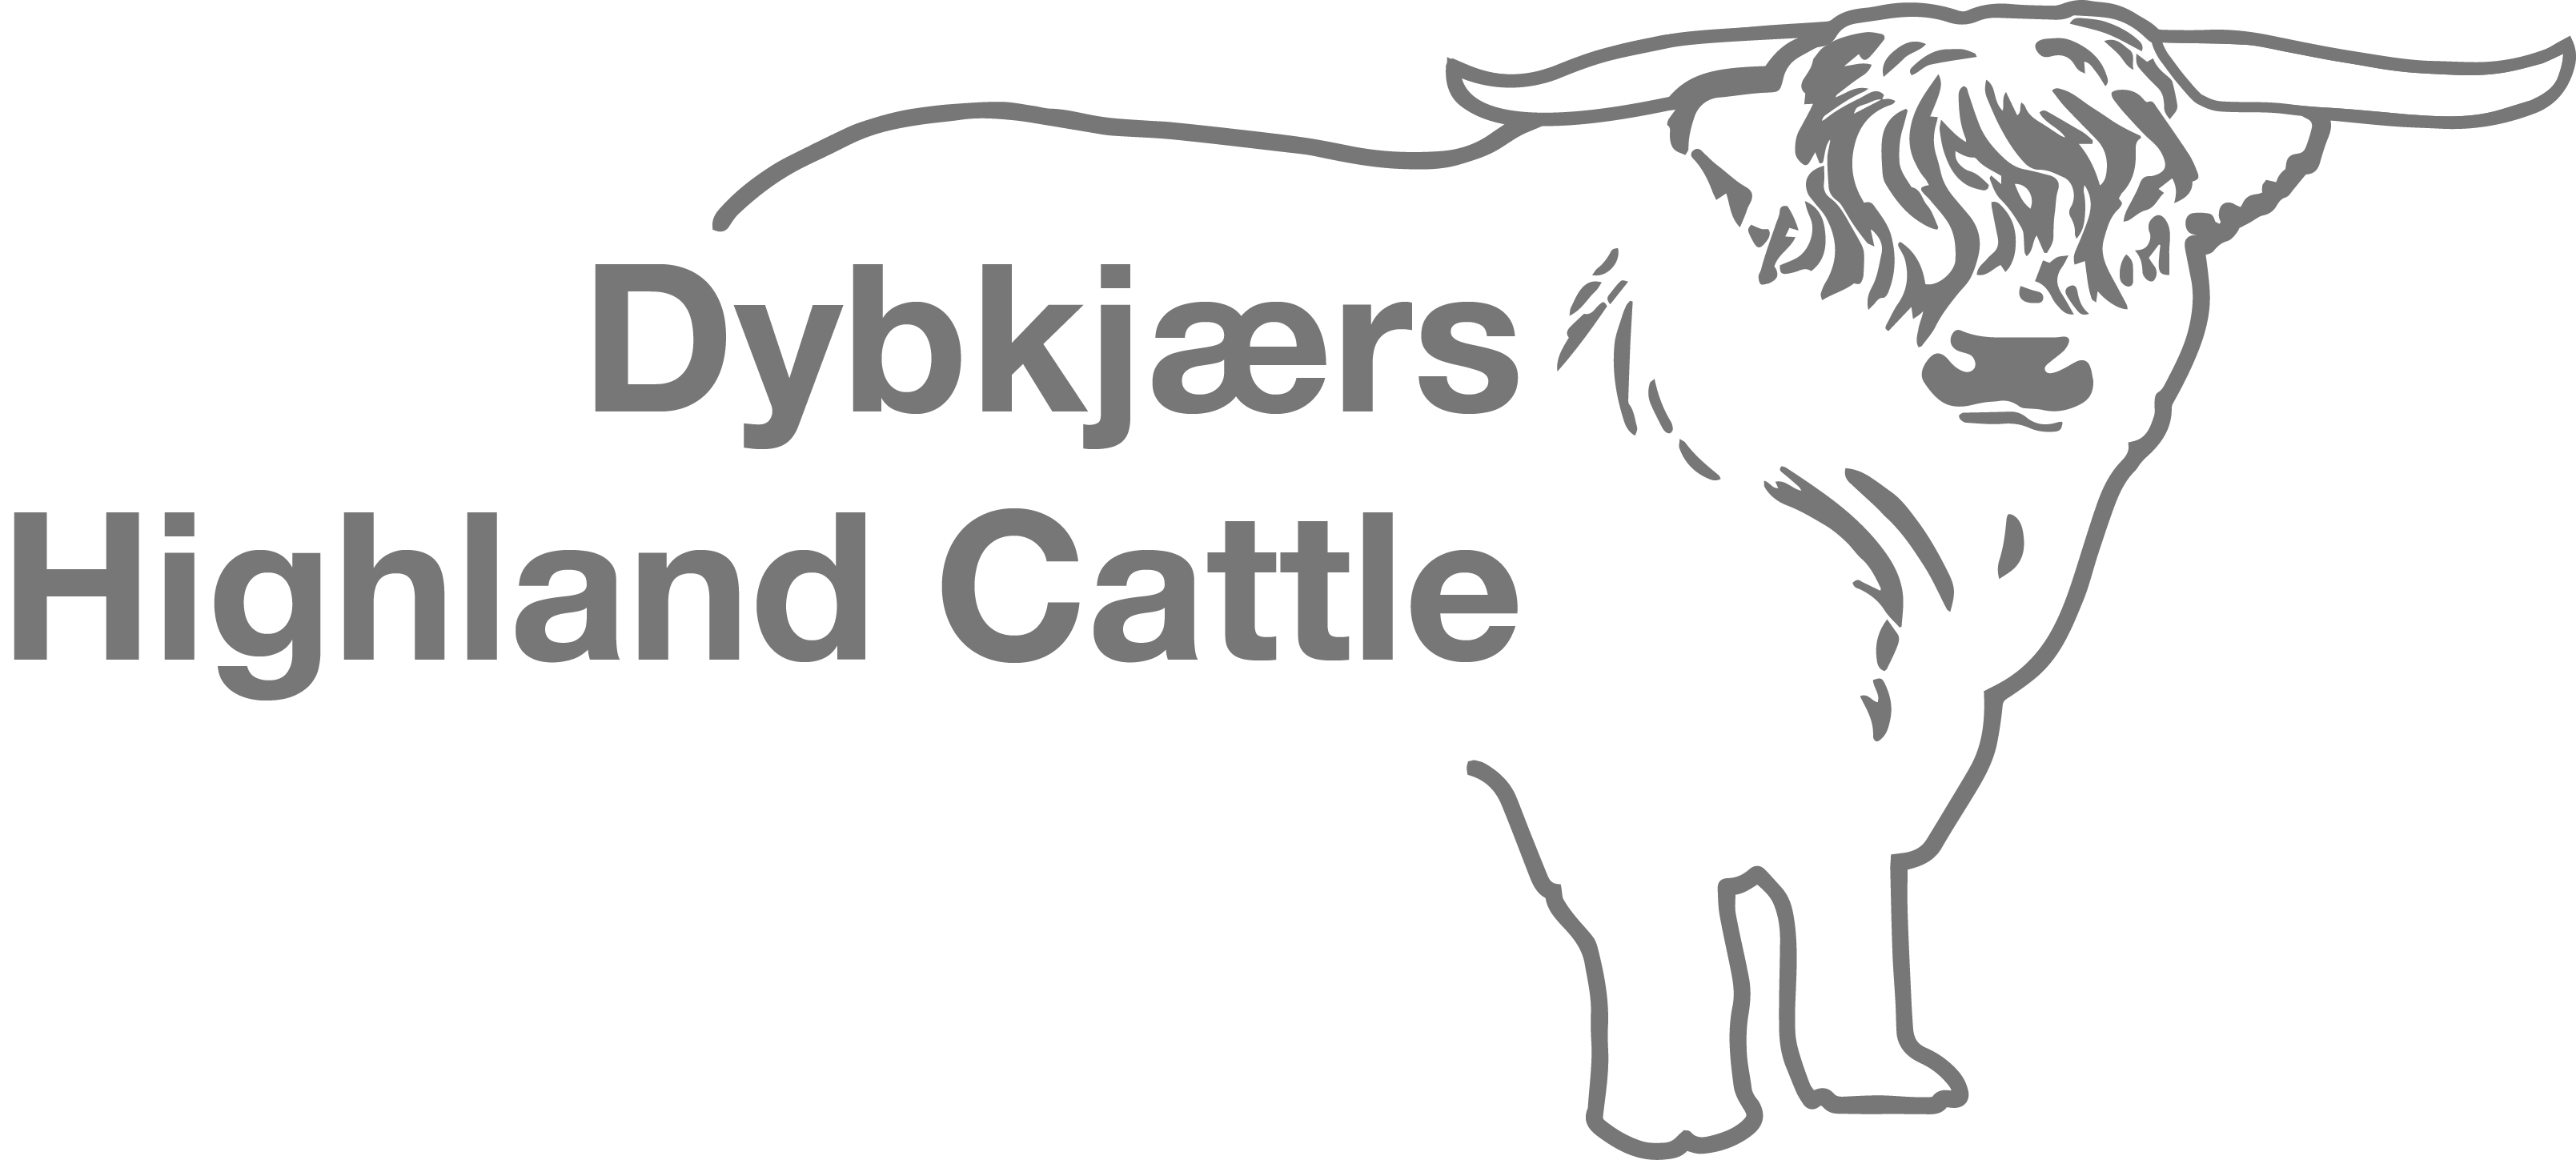 Dybkjærs Highland cattle logo